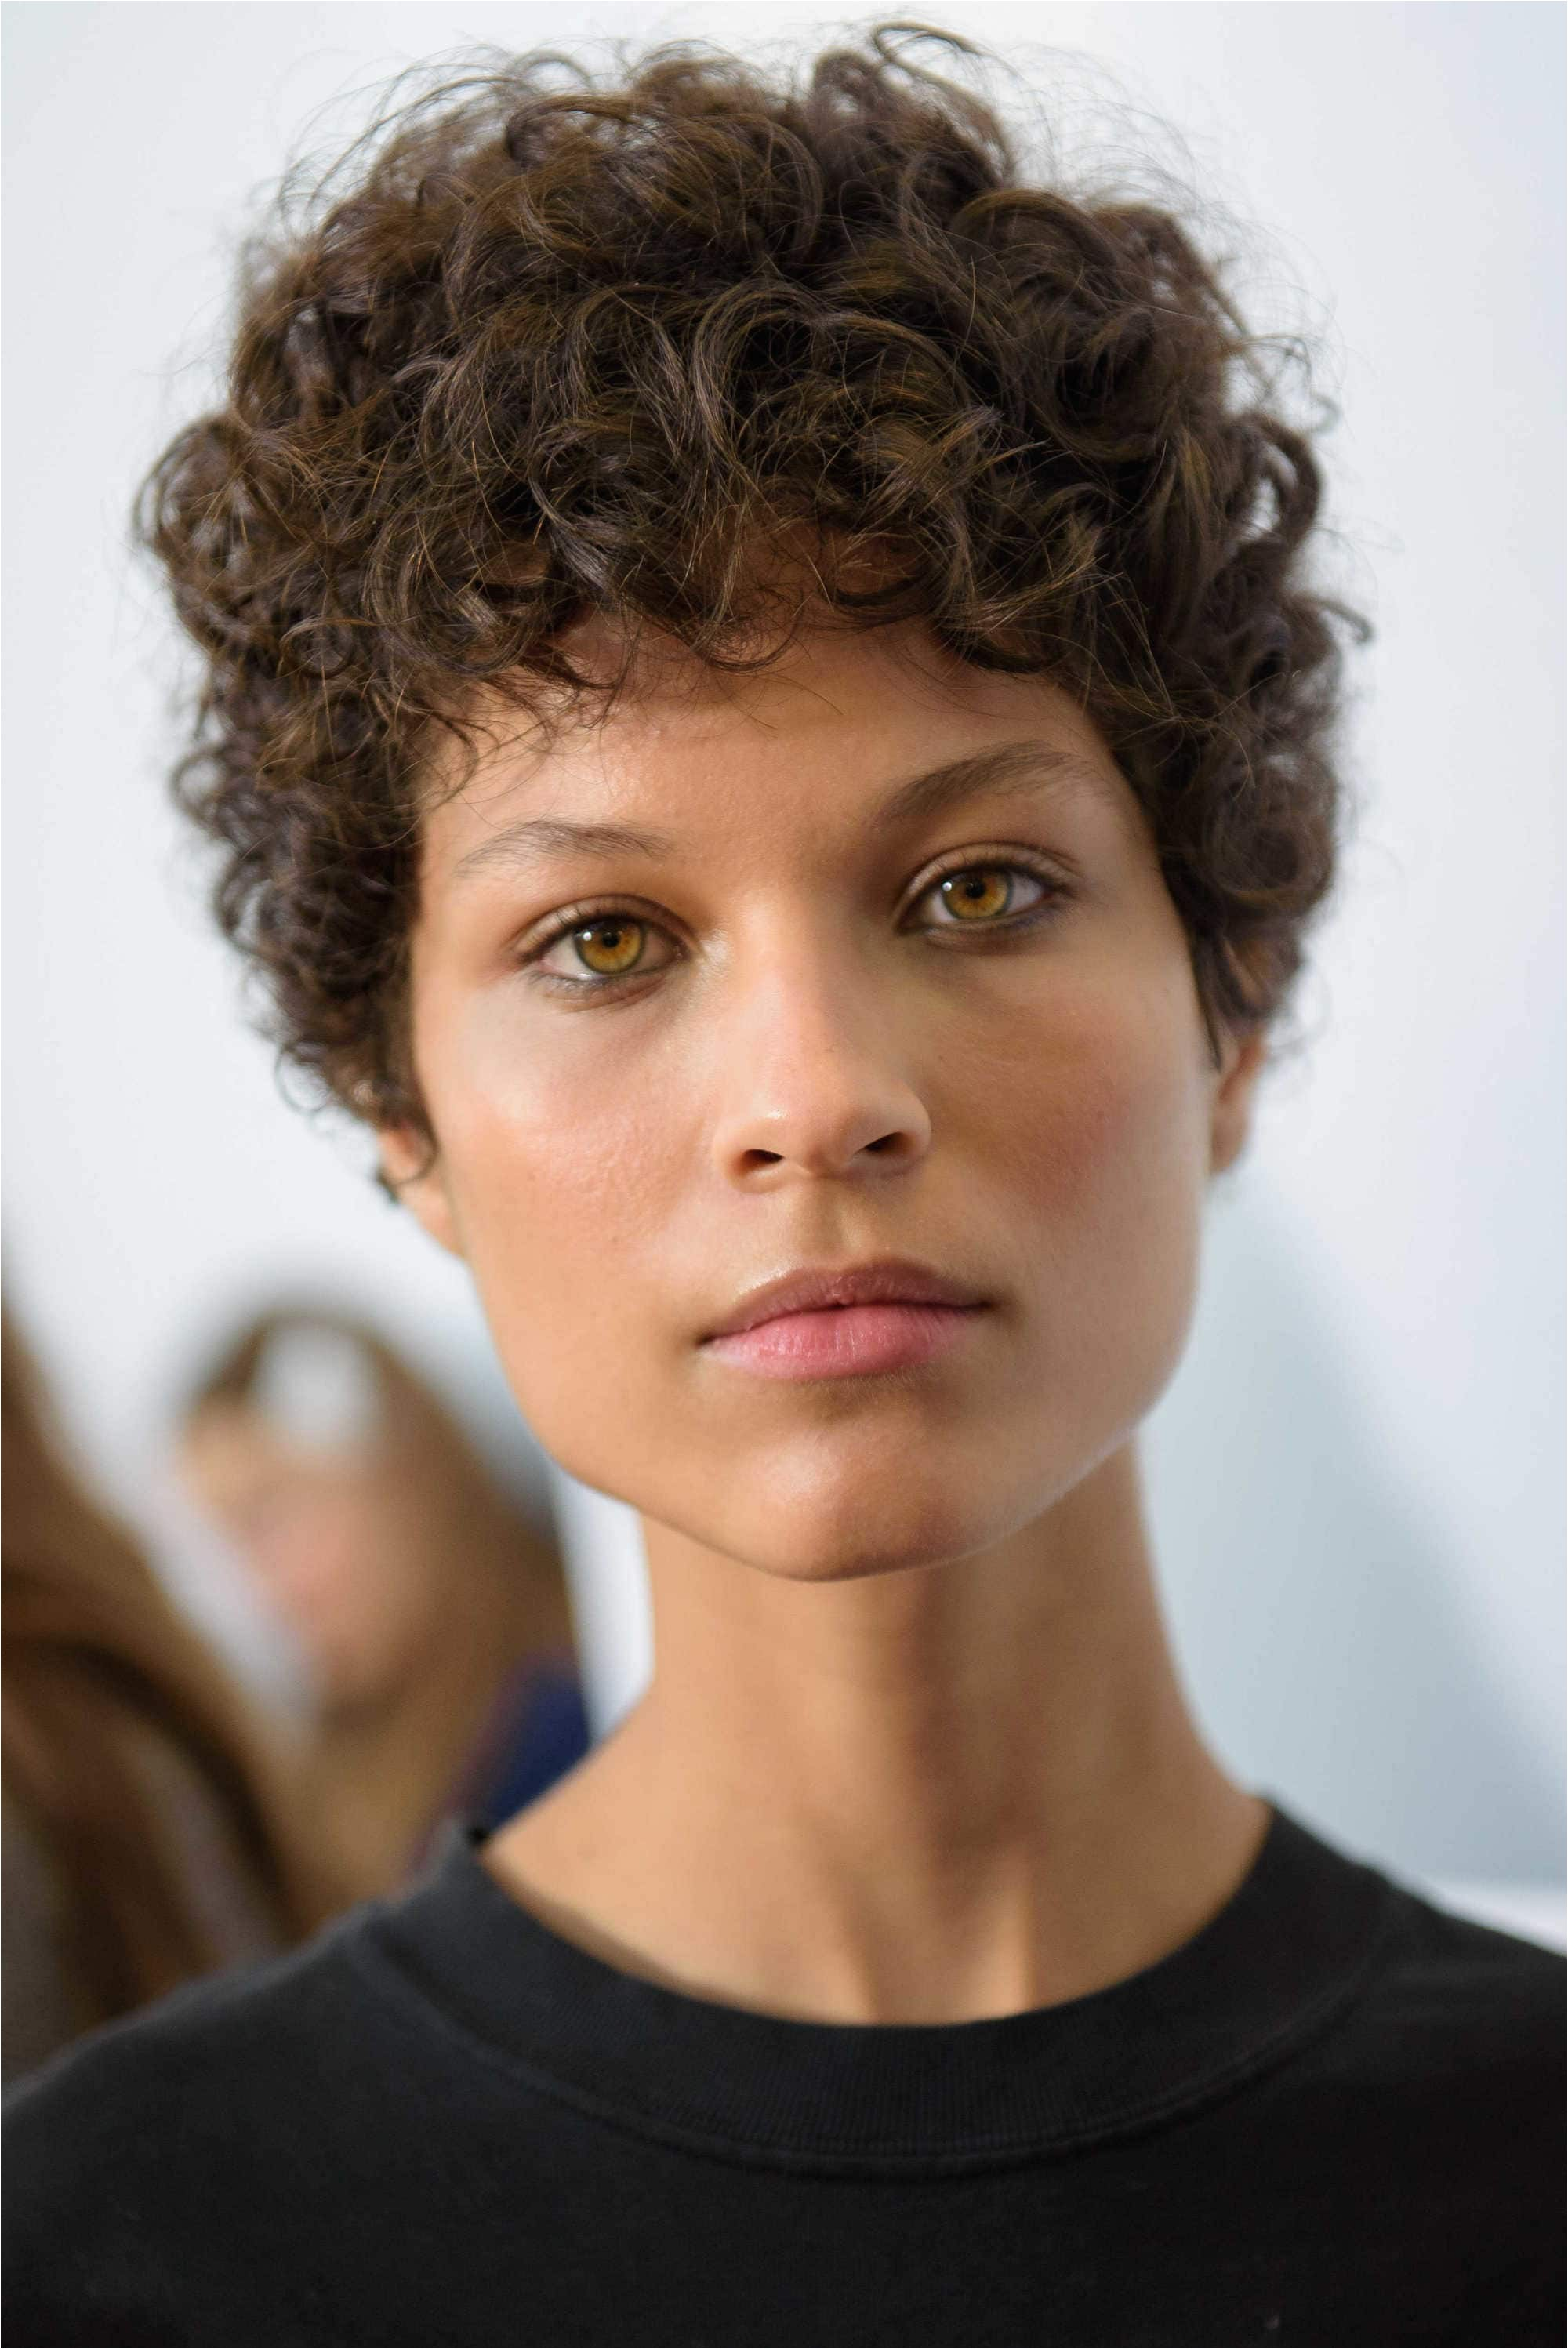 Short Tight Curly Hairstyles Short Curly Hair 3 Flattering and Simple Styling Ideas